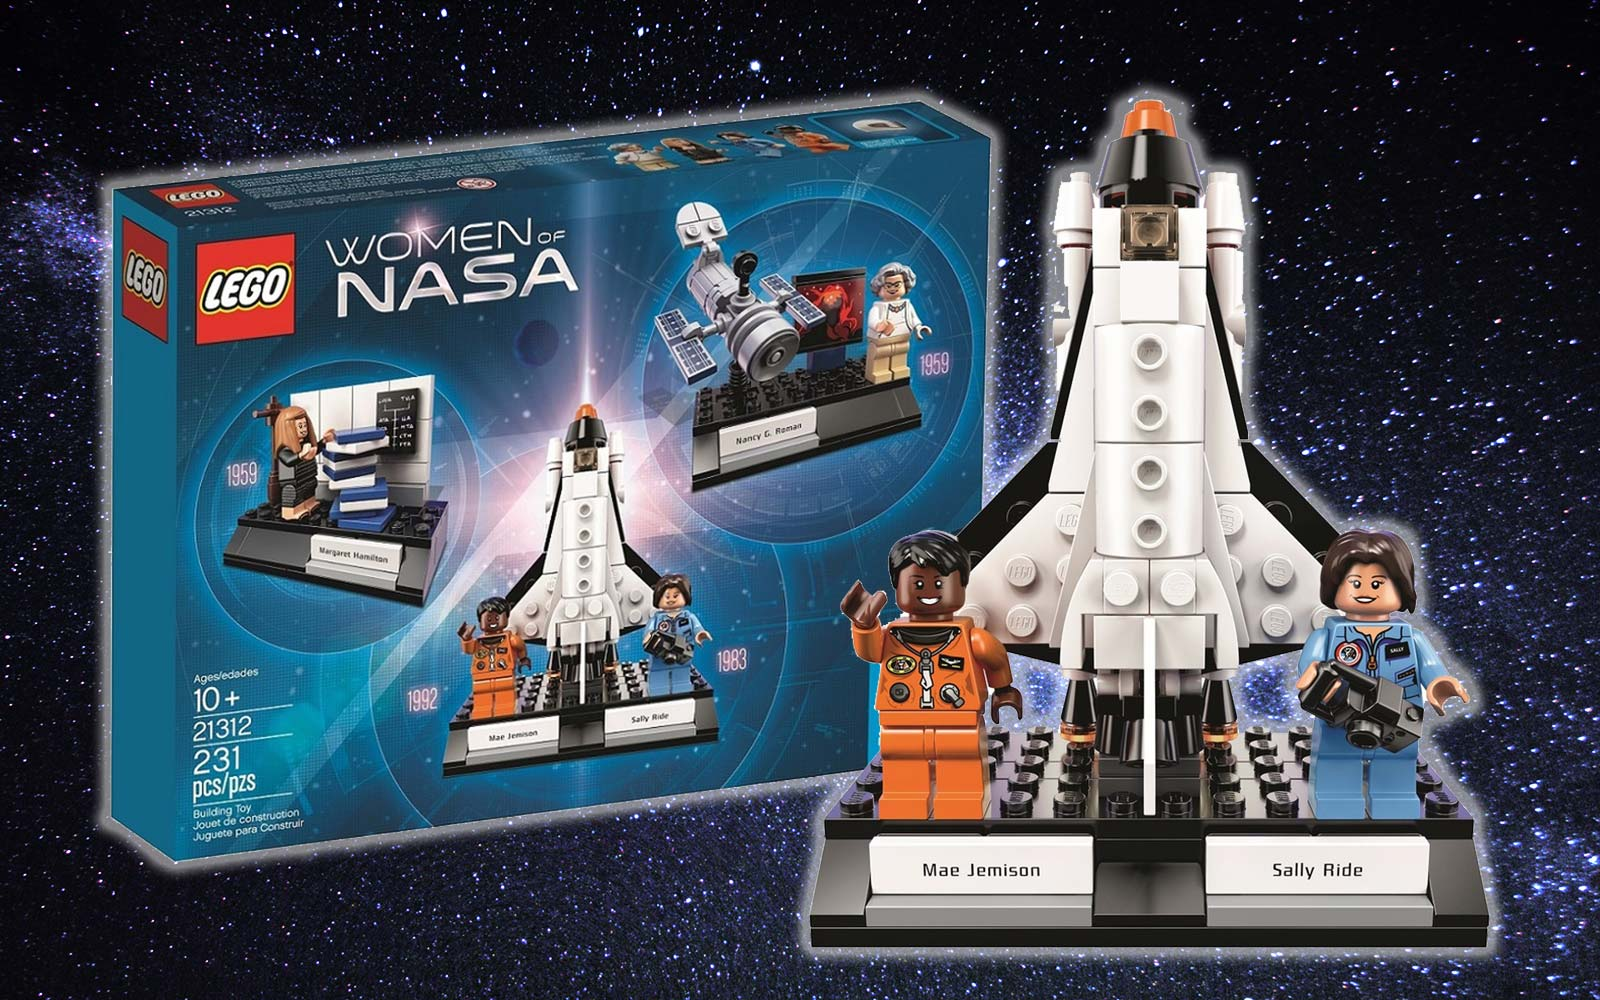 LEGO's New 'Women of NASA' Set Features Female Scientists, Engineers, and Astronauts